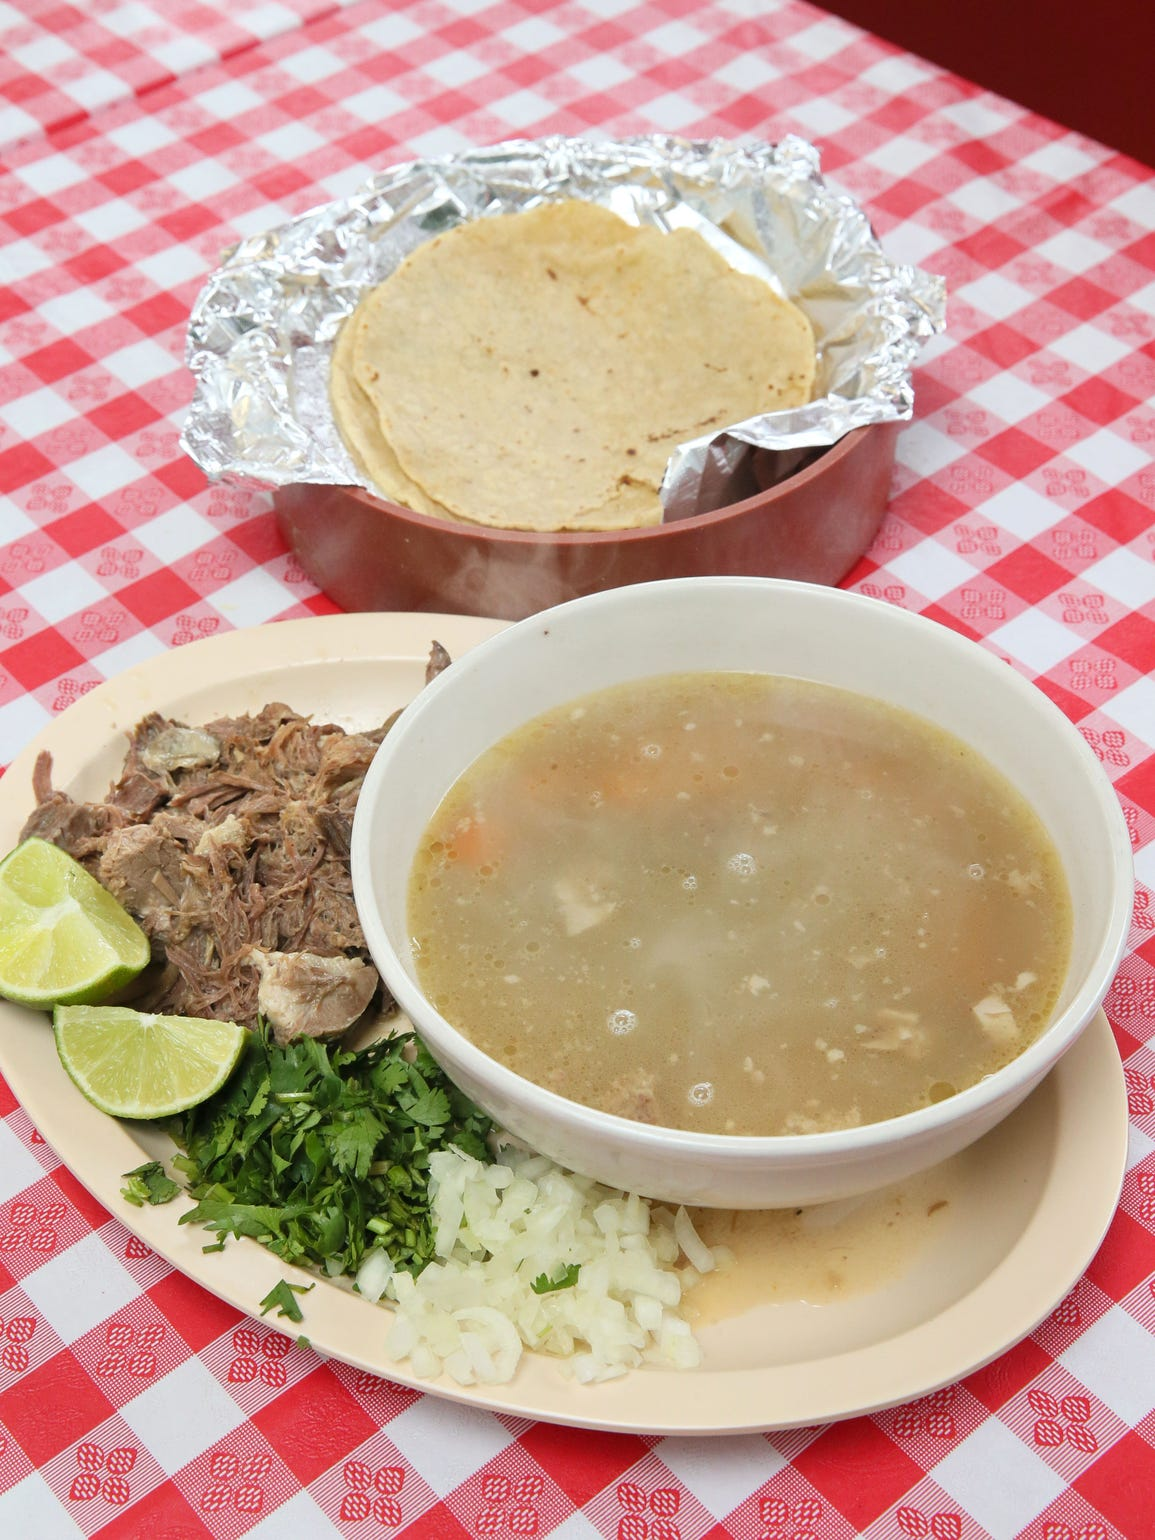 Chilango Express, at 6821 W. Lincoln Ave., offers handmade